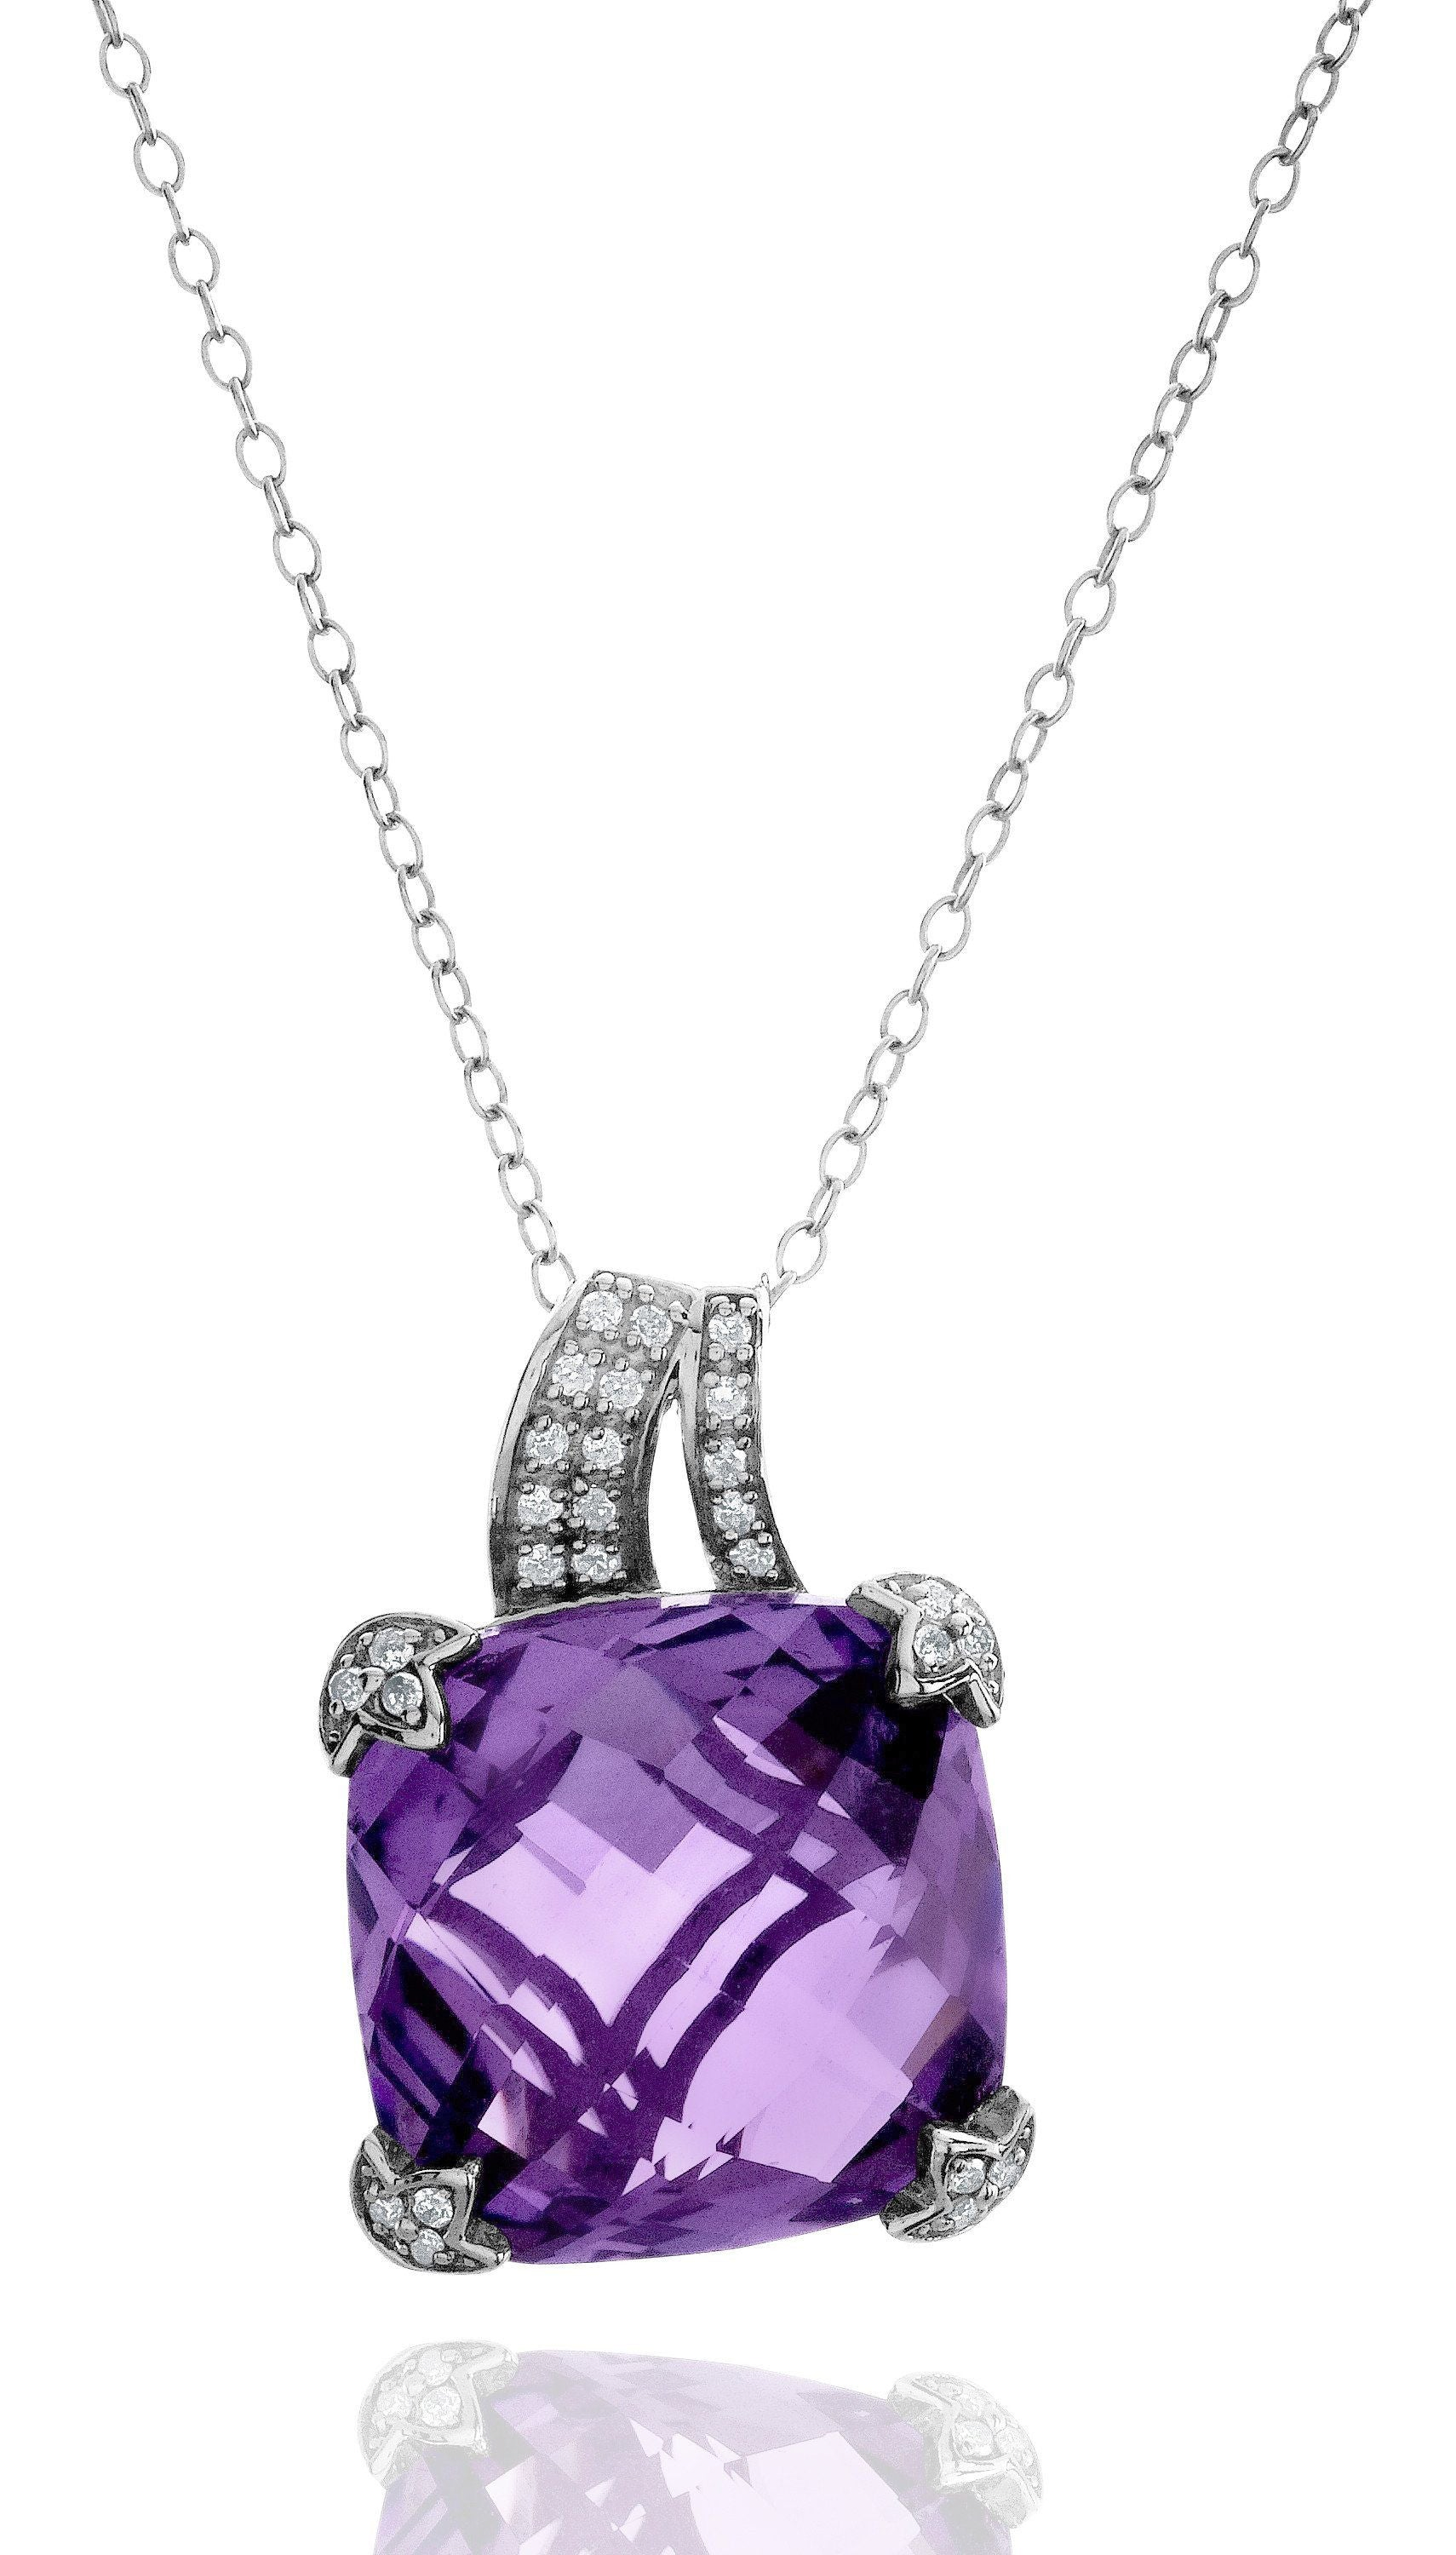 "9.80 Carat Genuine Amethyst & Diamond Pendant in Sterling Silver with 18"" Chain"